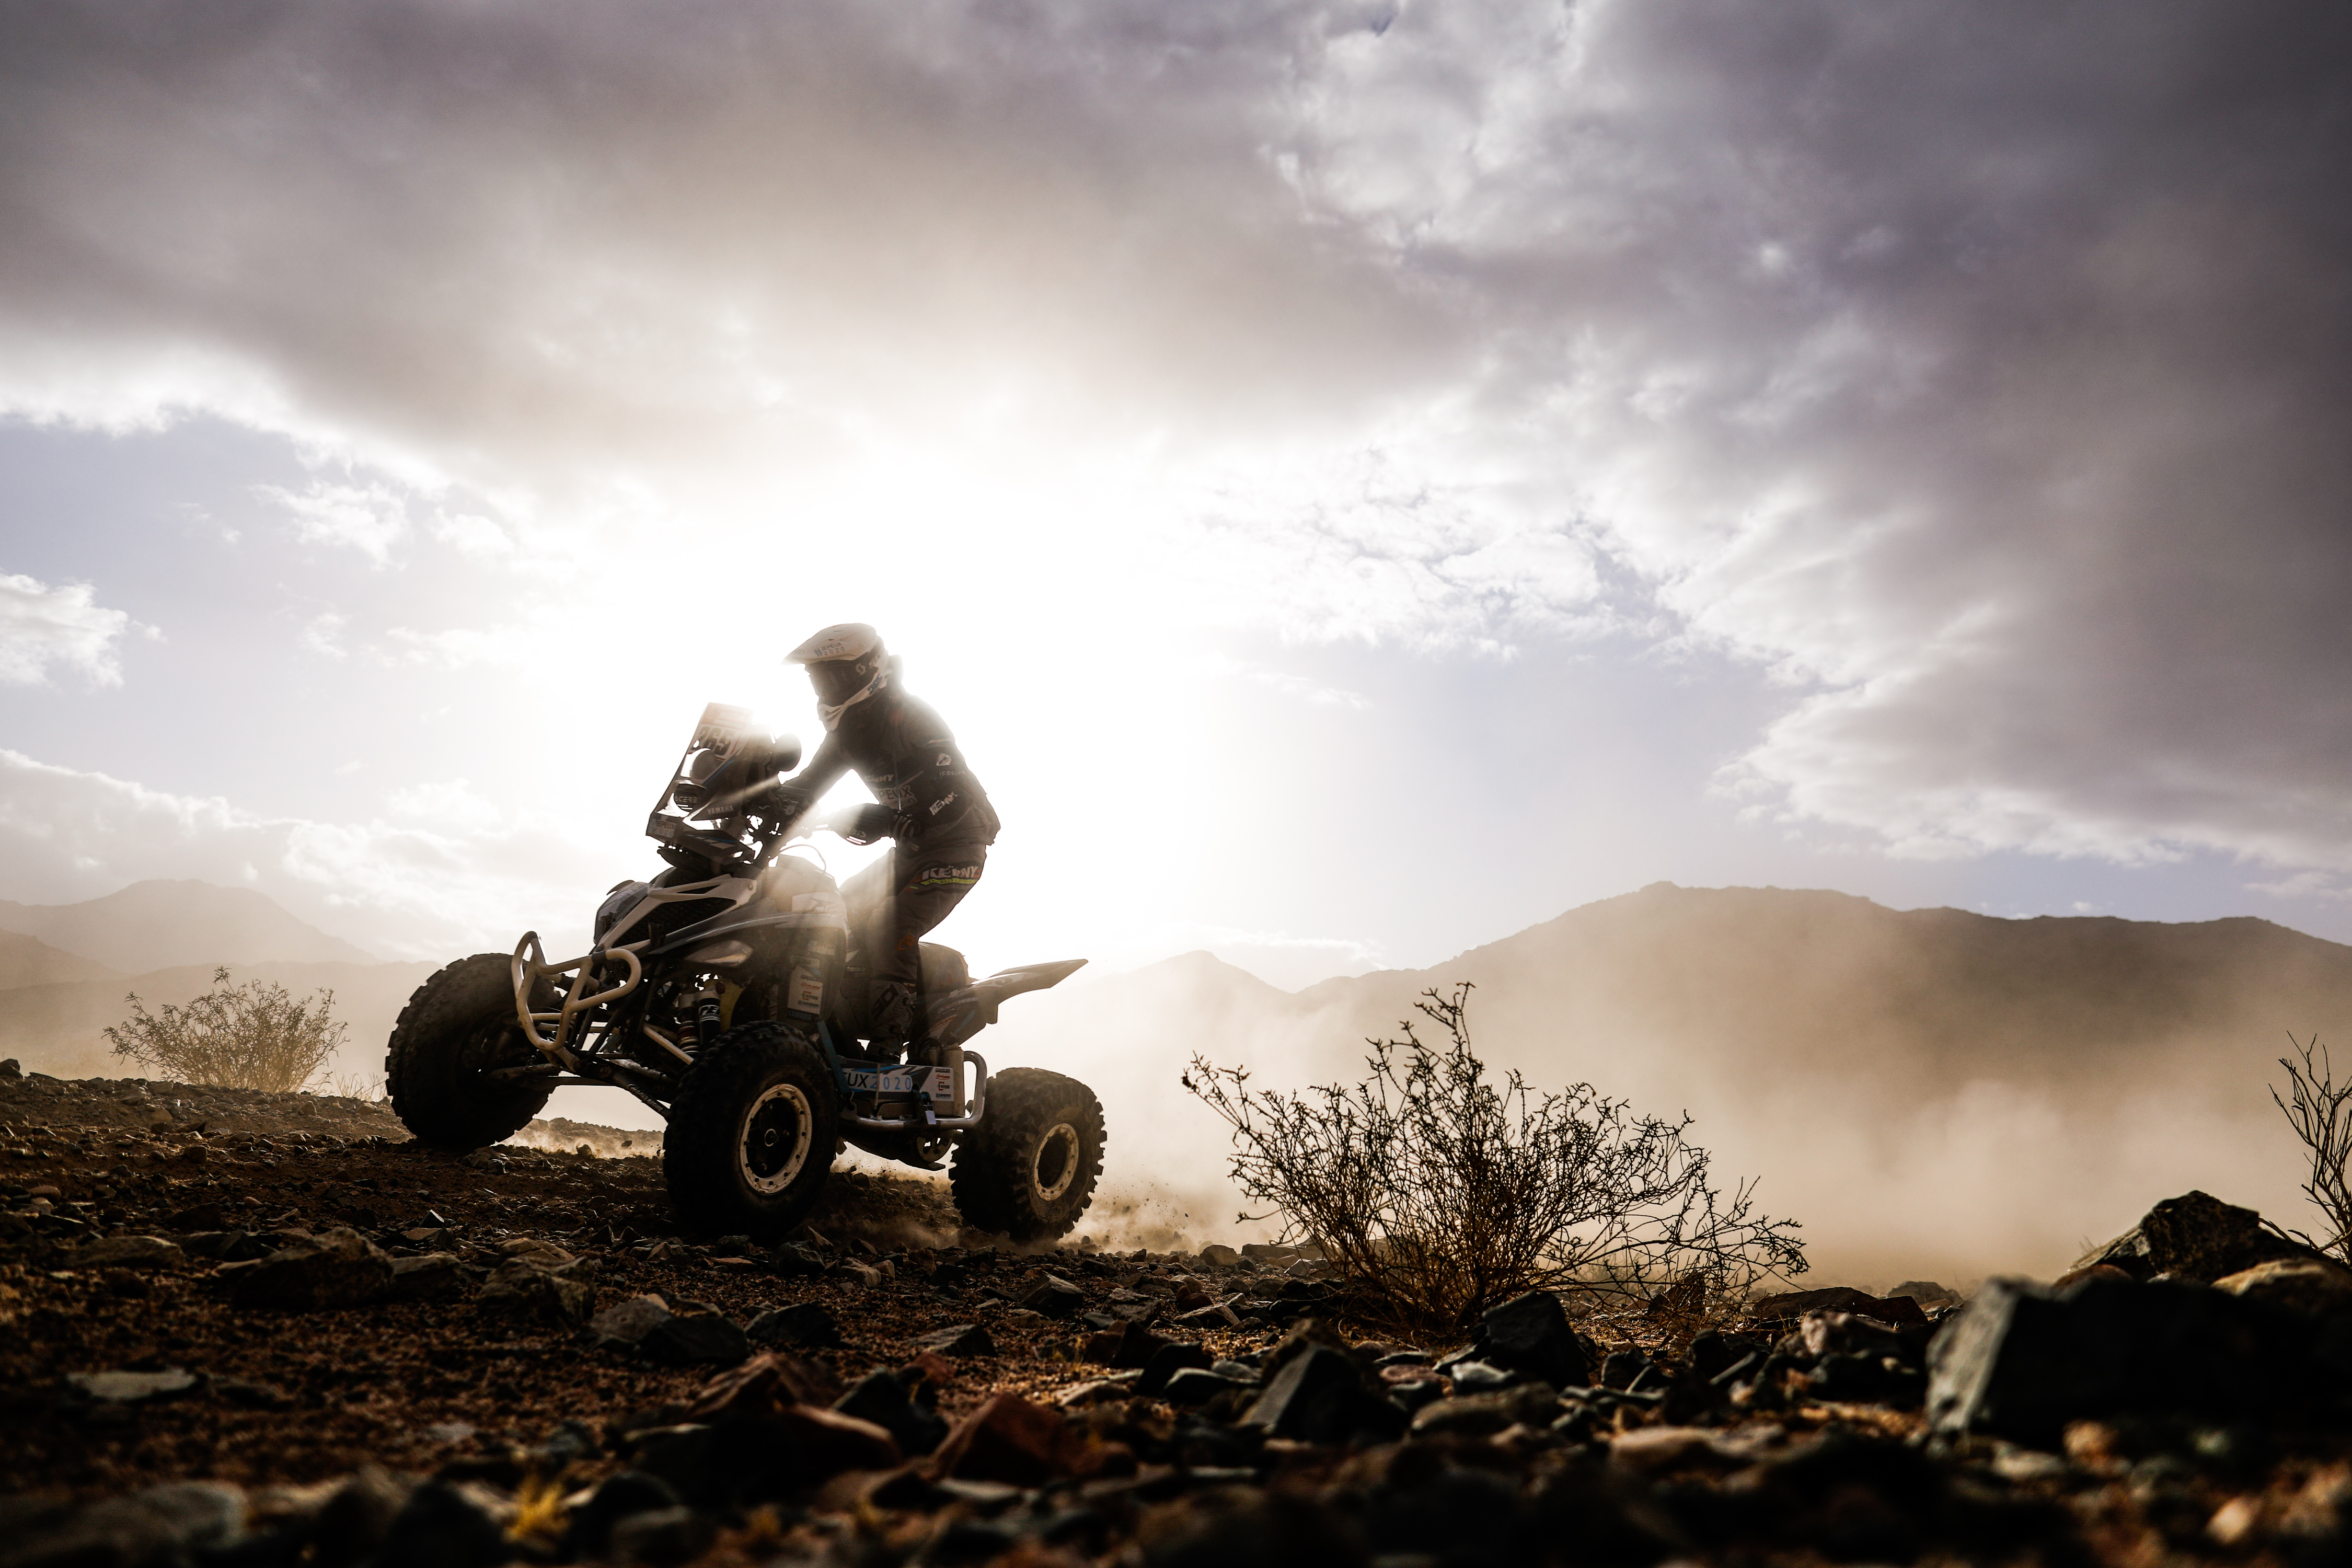 Gallery: 2020 Dakar Rally in Saudi Arabia was a photographic feast